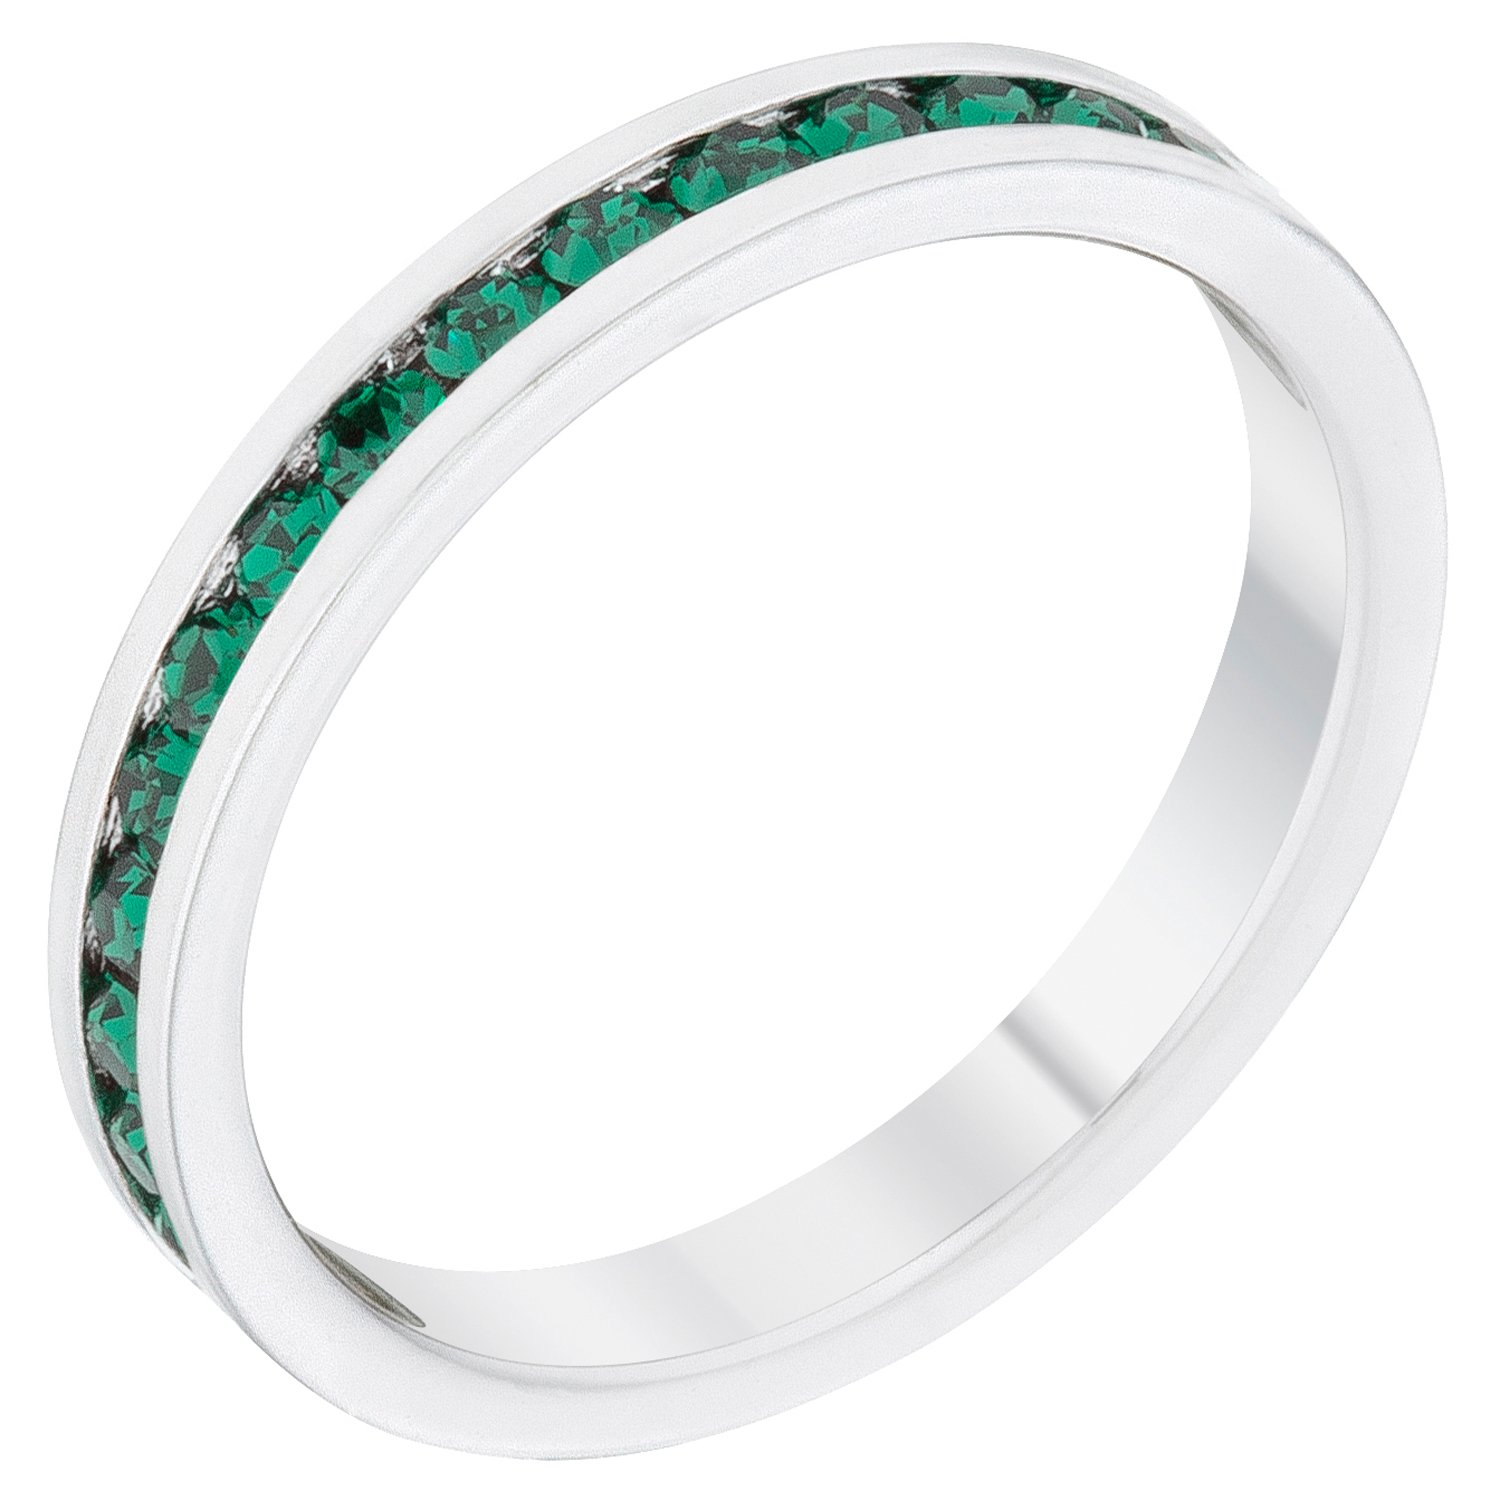 Birthstone rings are best gifts for girlfriend on her birthday